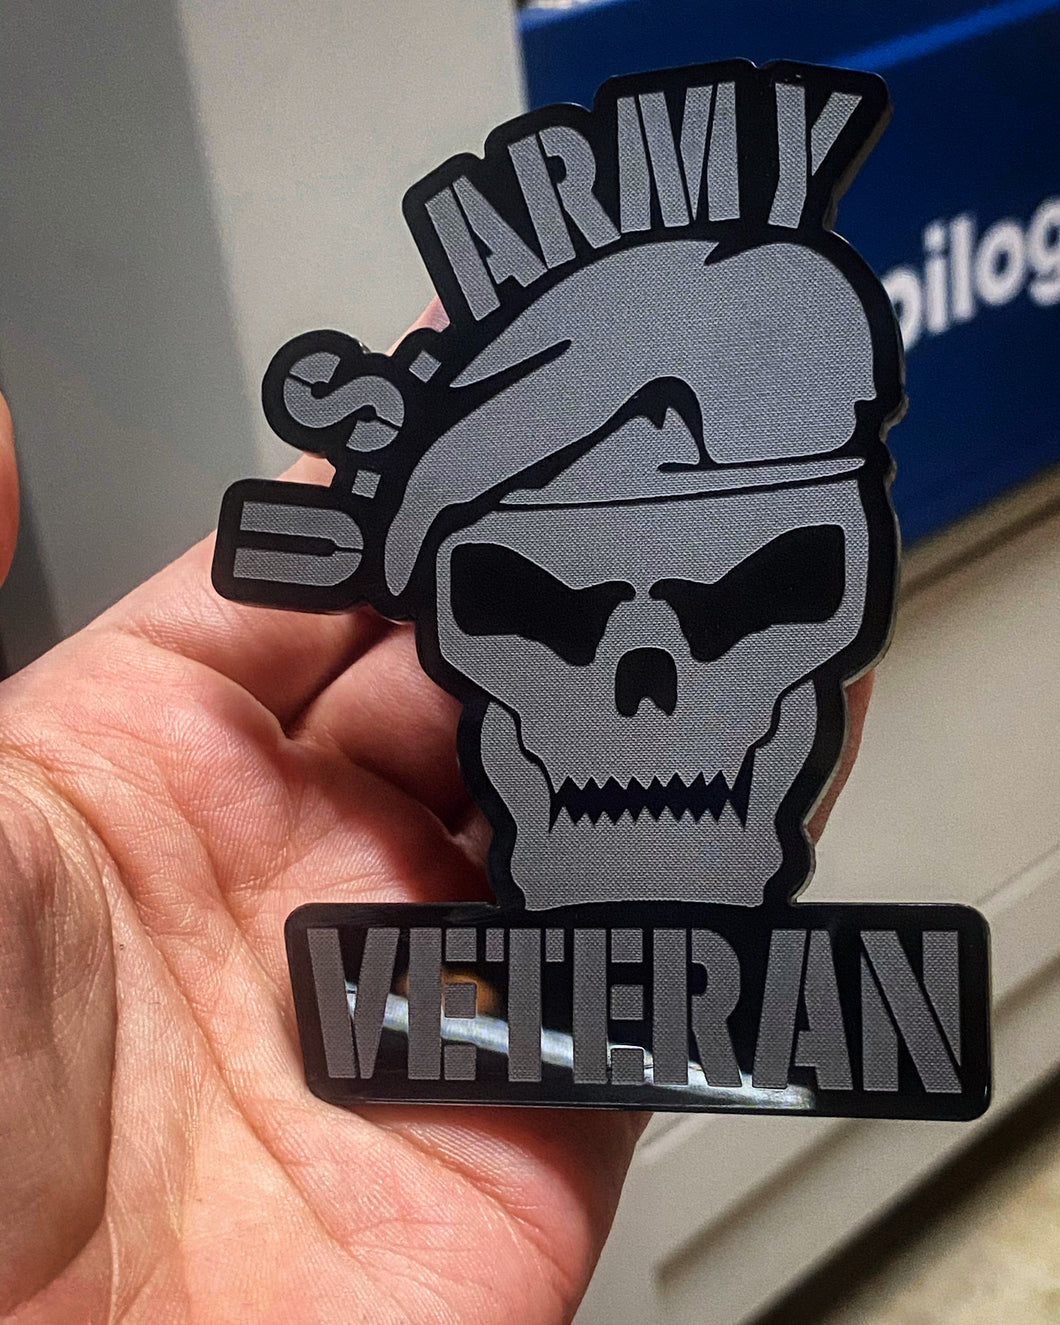 US ARMY Veteran Badges (2) - Forged Concepts Custom Car Badges